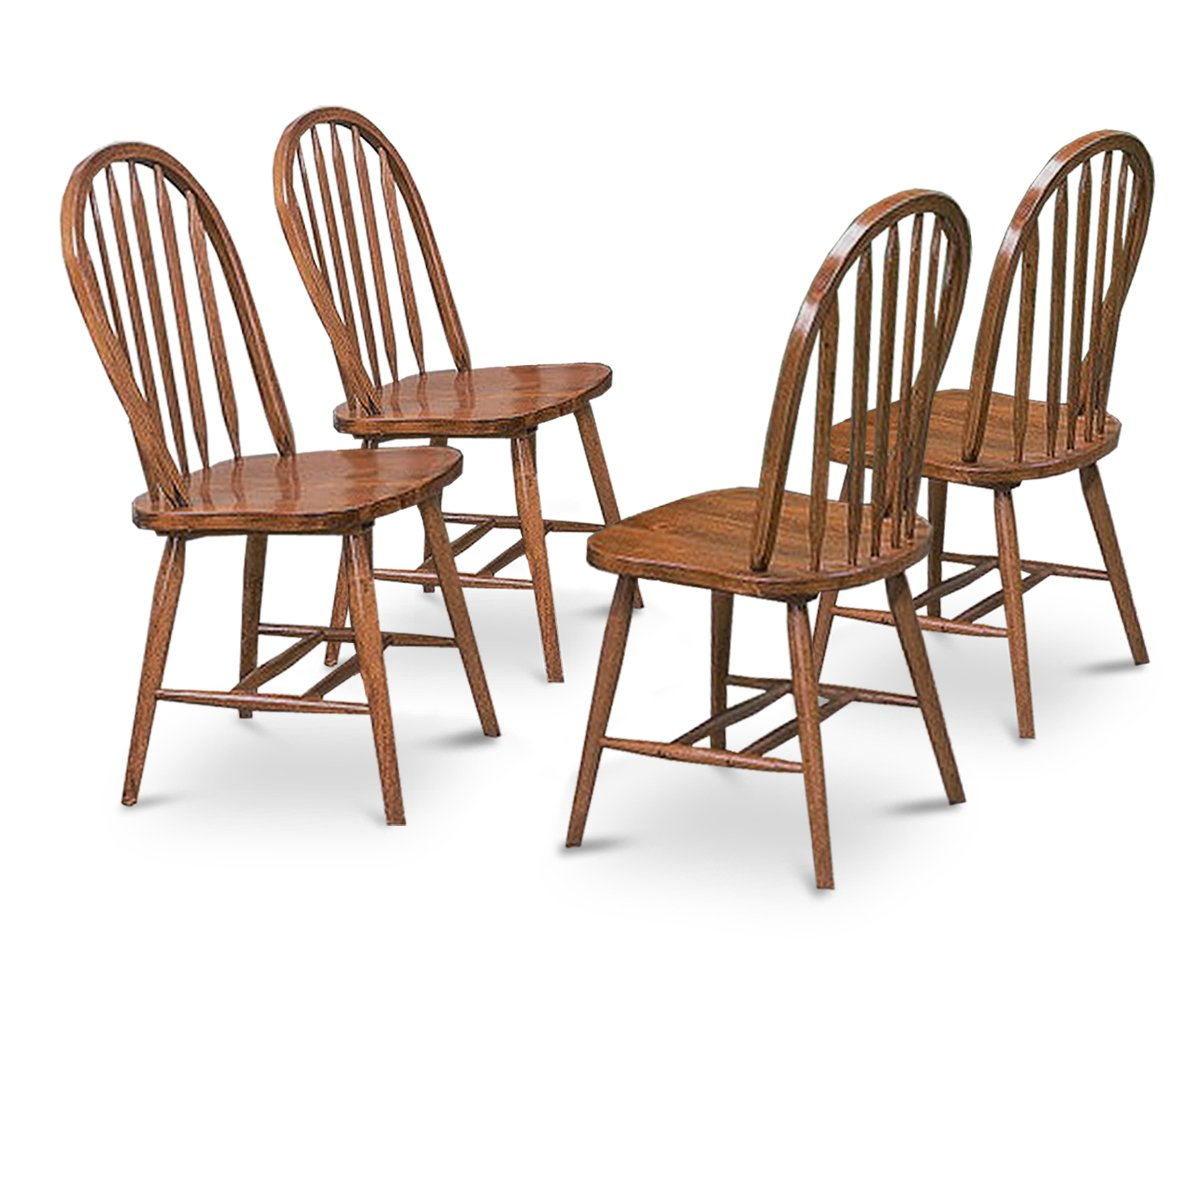 oak kitchen chairs swivel kijiji peterborough 4 dark stain dining arrow back set